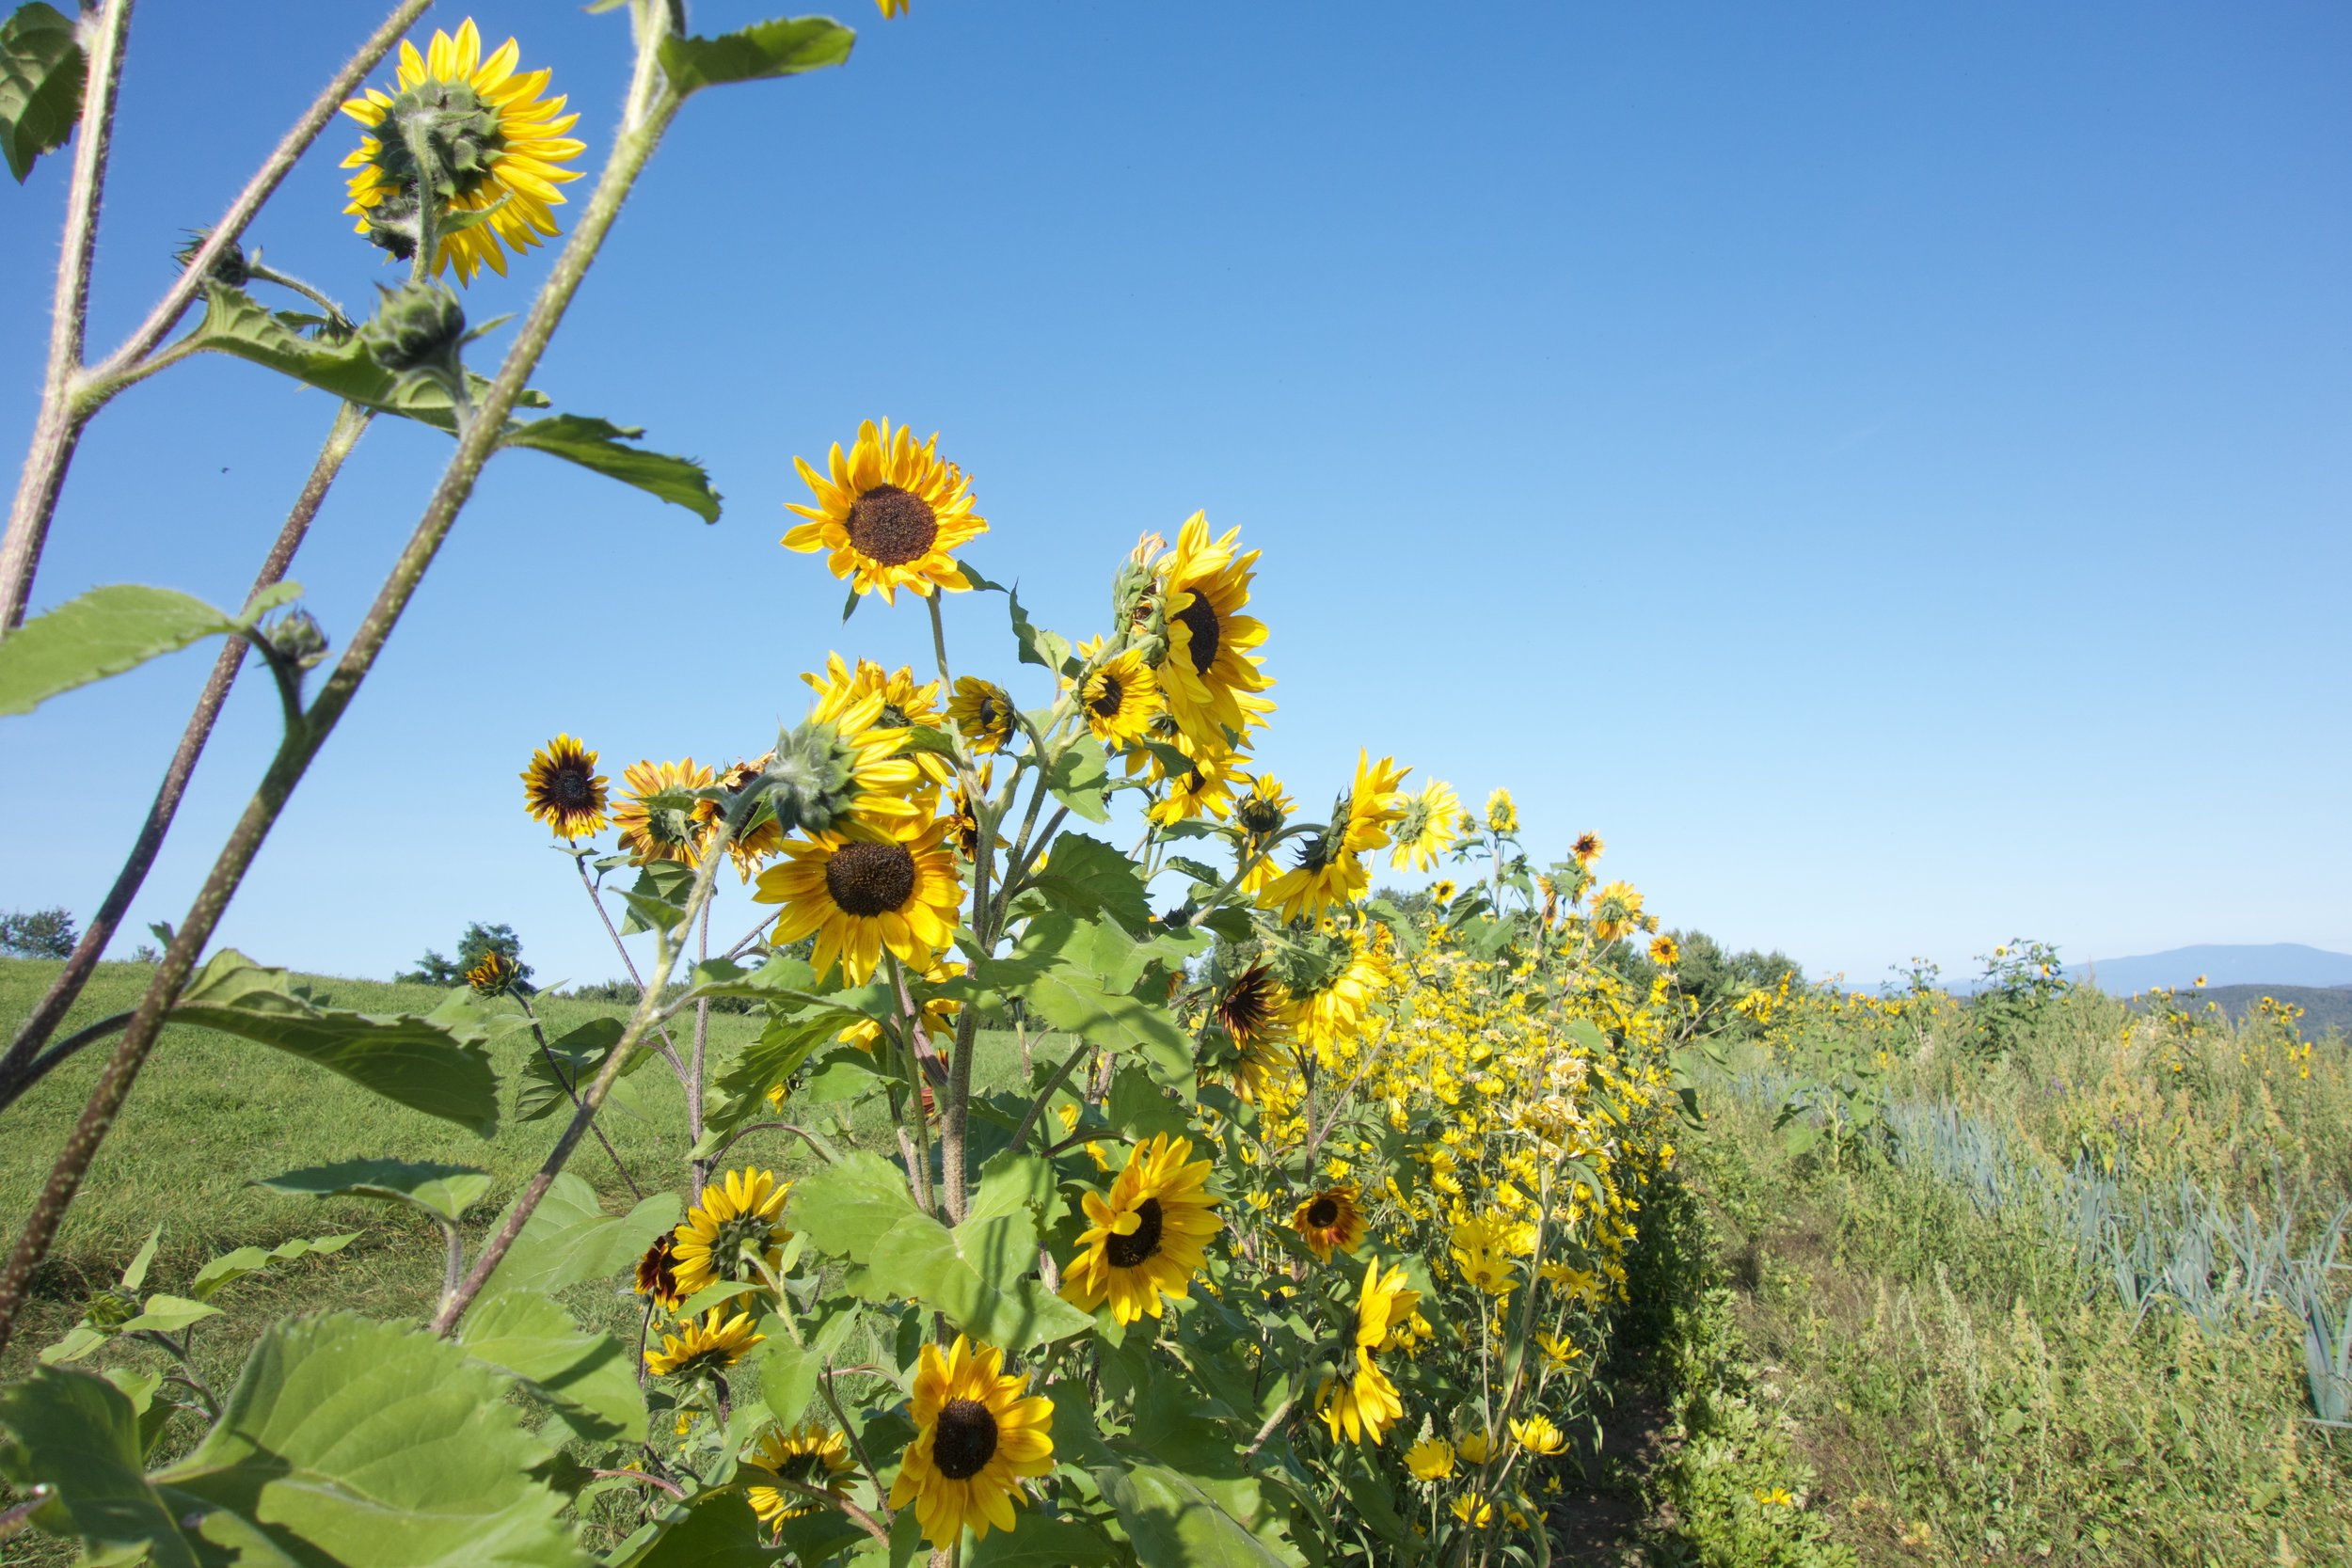 Sunflowers on Garden Hill; Ariane Desrosiers; Milton Academy